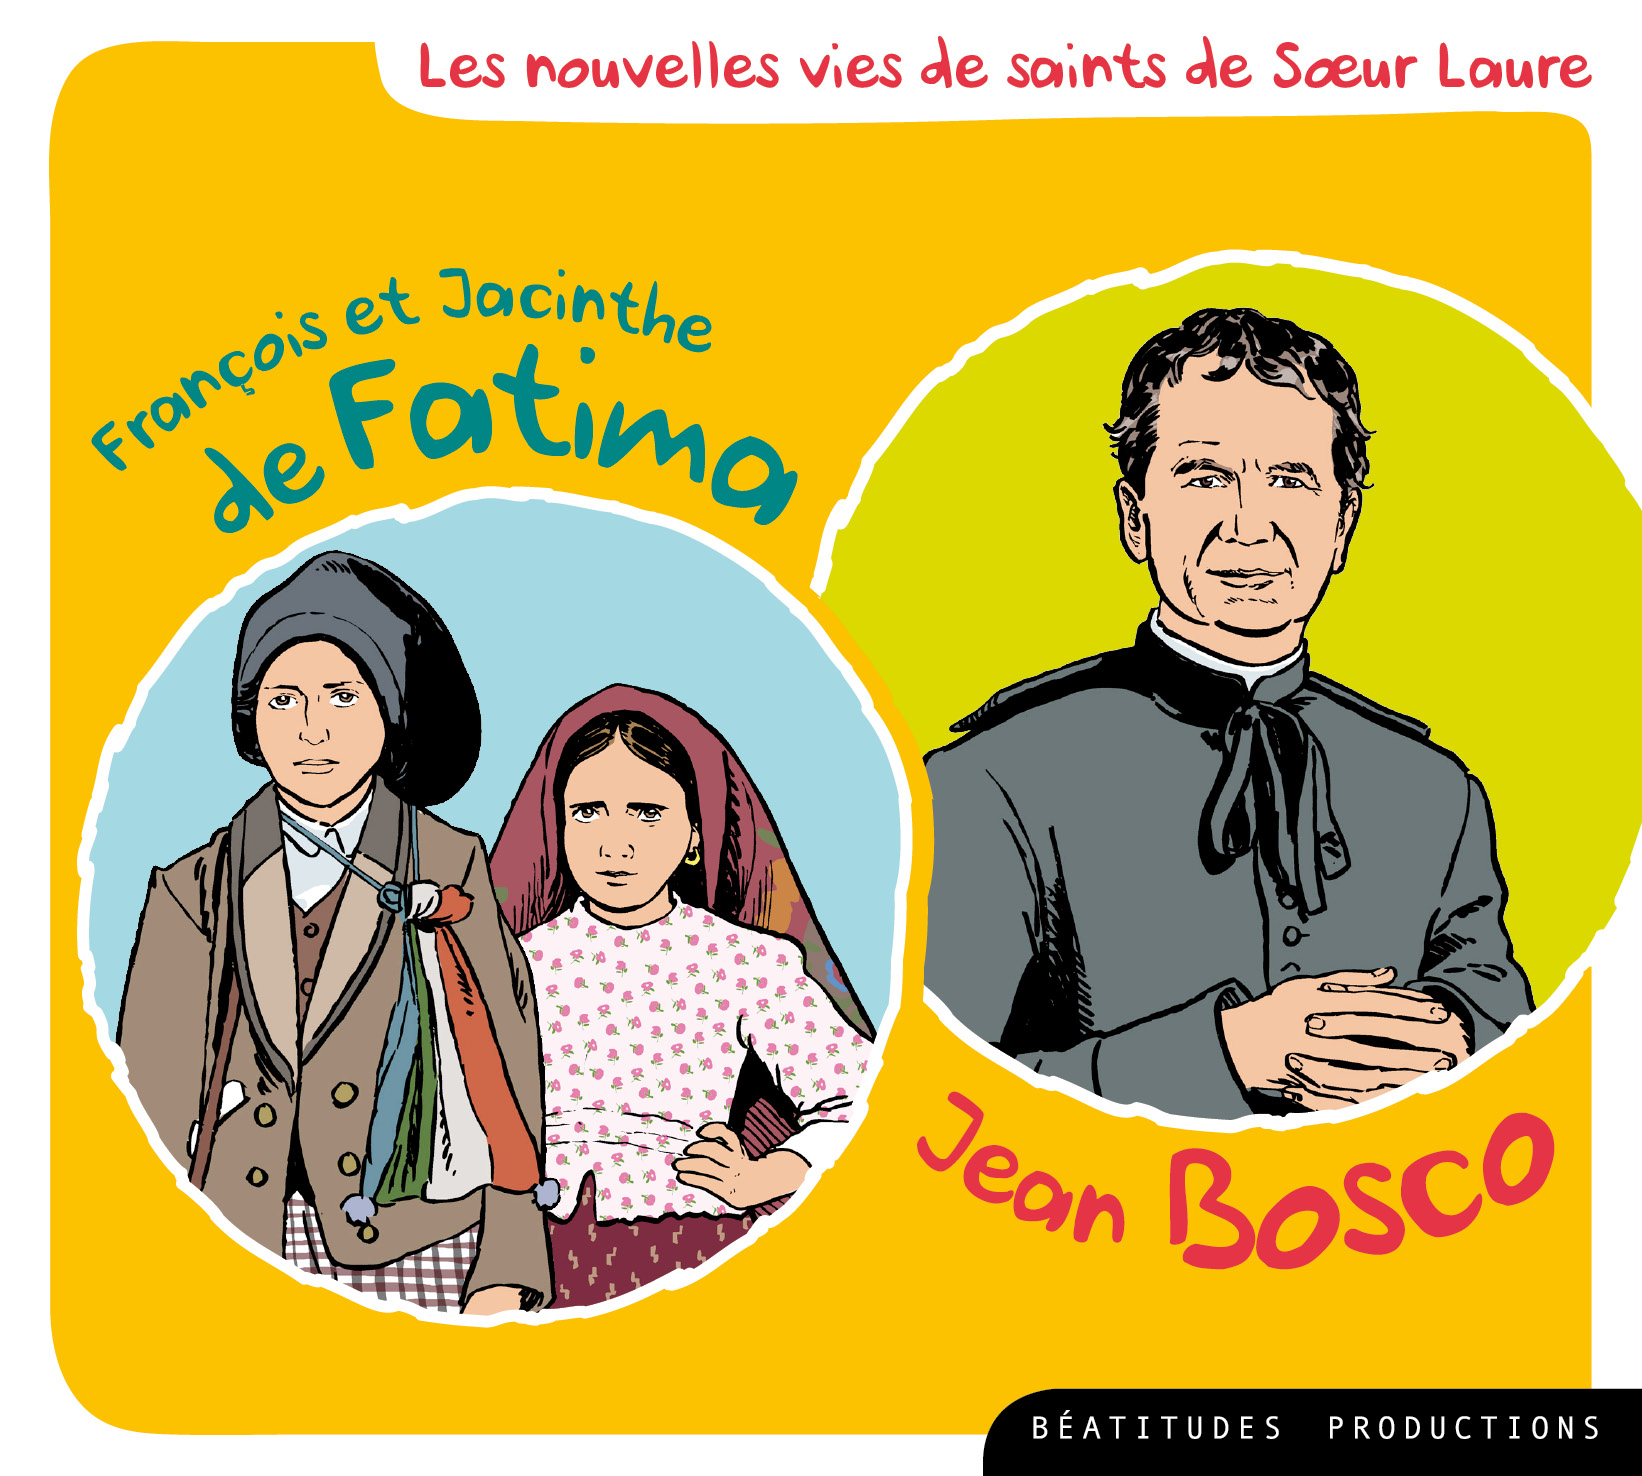 CD FRANCOIS ET JACINTHE DE FATIMA, DON BOSCO - VIE DE SAINTS: